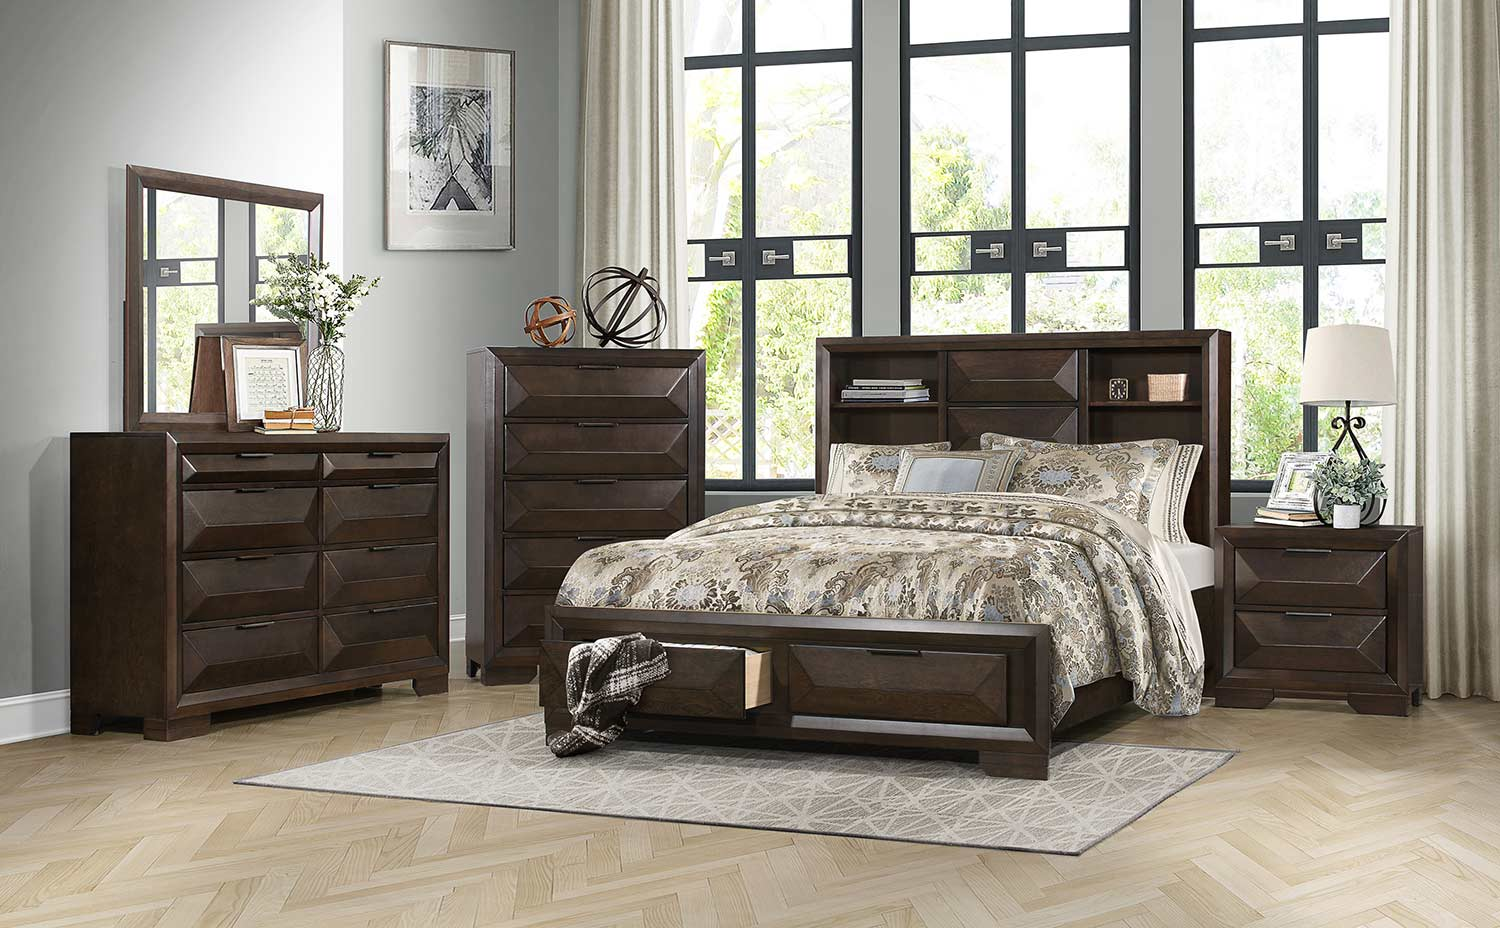 Homelegance Chesky Platform Storage Bedroom Set - Warm Espresso